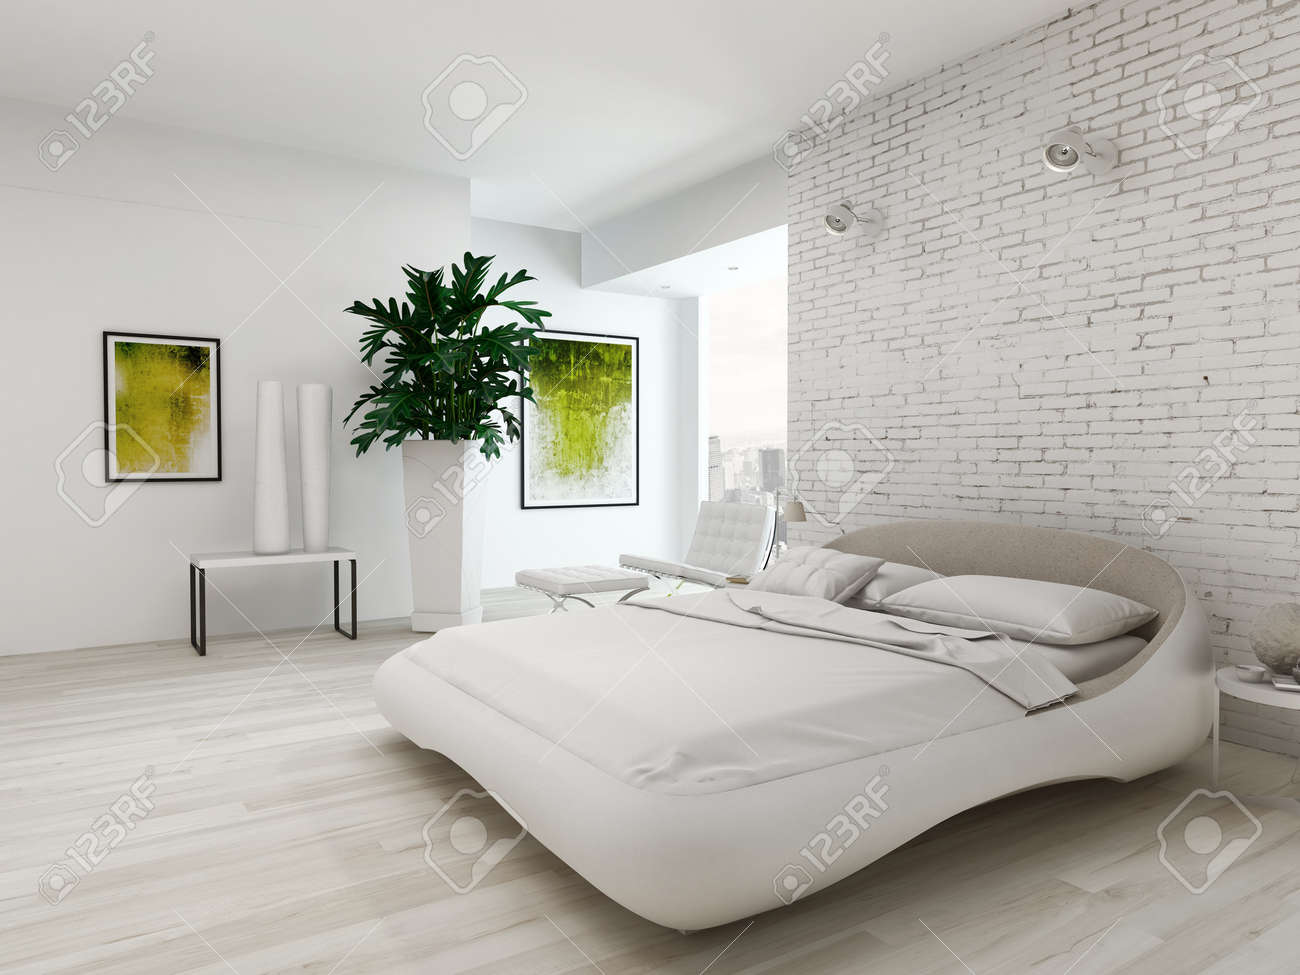 Lit King Size Design. Image Of Beautiful White Bed Sets King Size ...